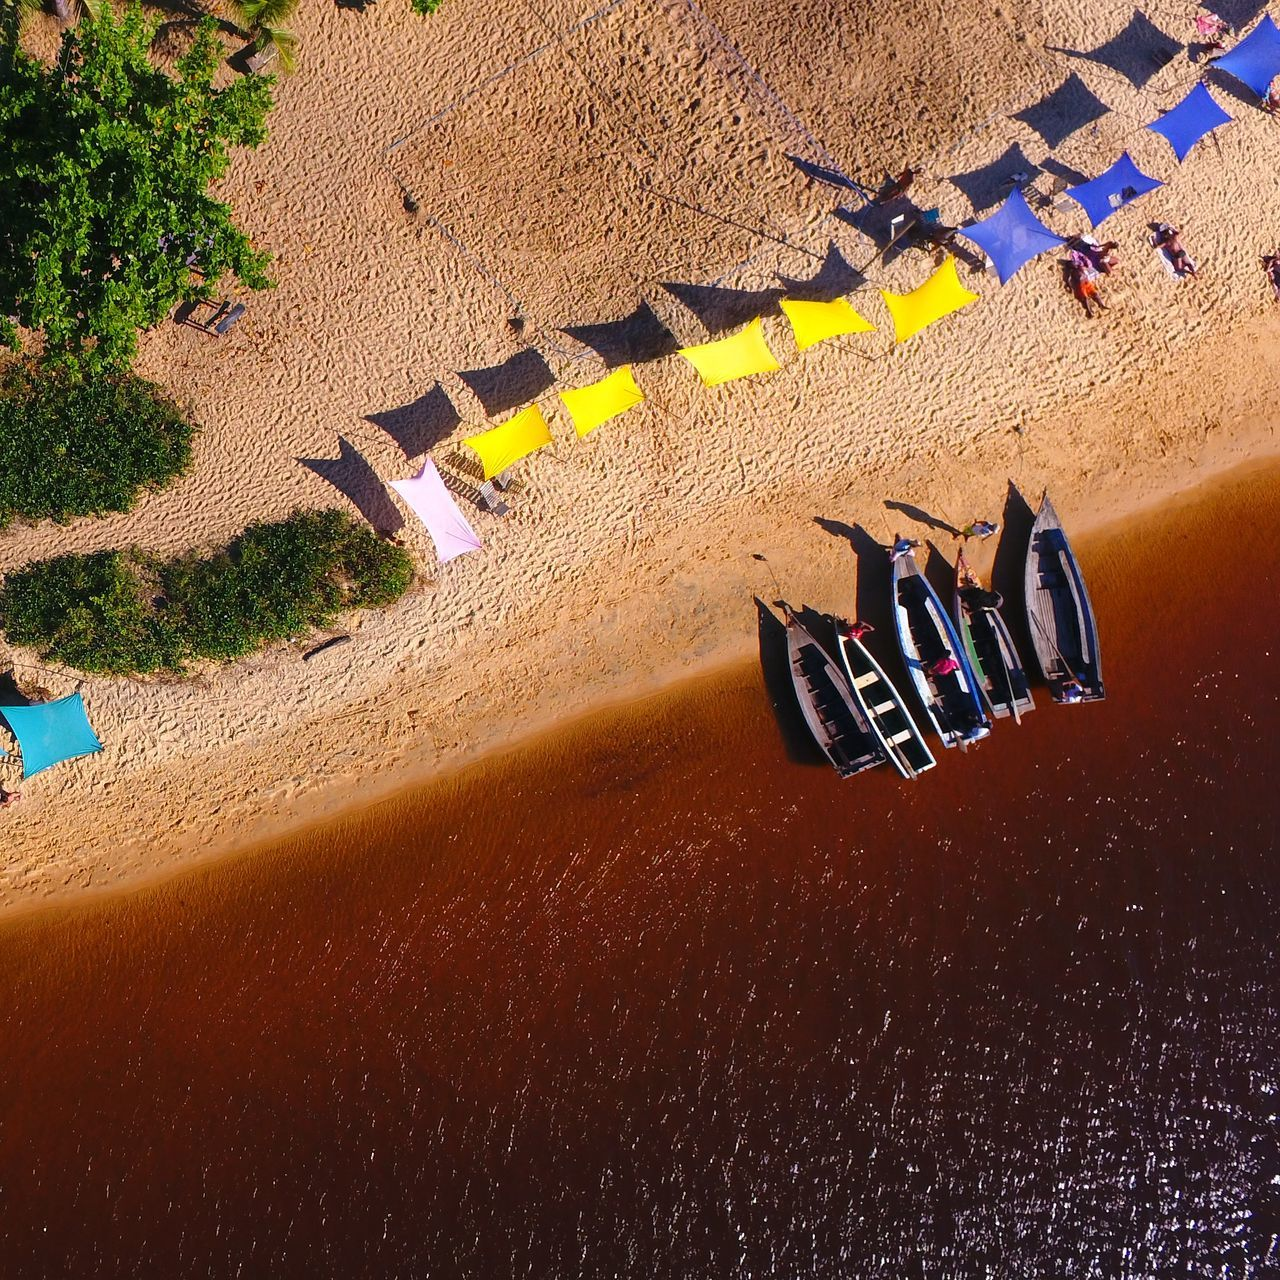 Vacations Nature High Angle View Aerial Photo Drone Photography Drone Shot Water Caraíva -Brazil River Aerial Shot Aerial View The Week On EyeEm Lost In The Landscape Connected By Travel EyeEmNewHere Second Acts Perspectives On Nature Rethink Things